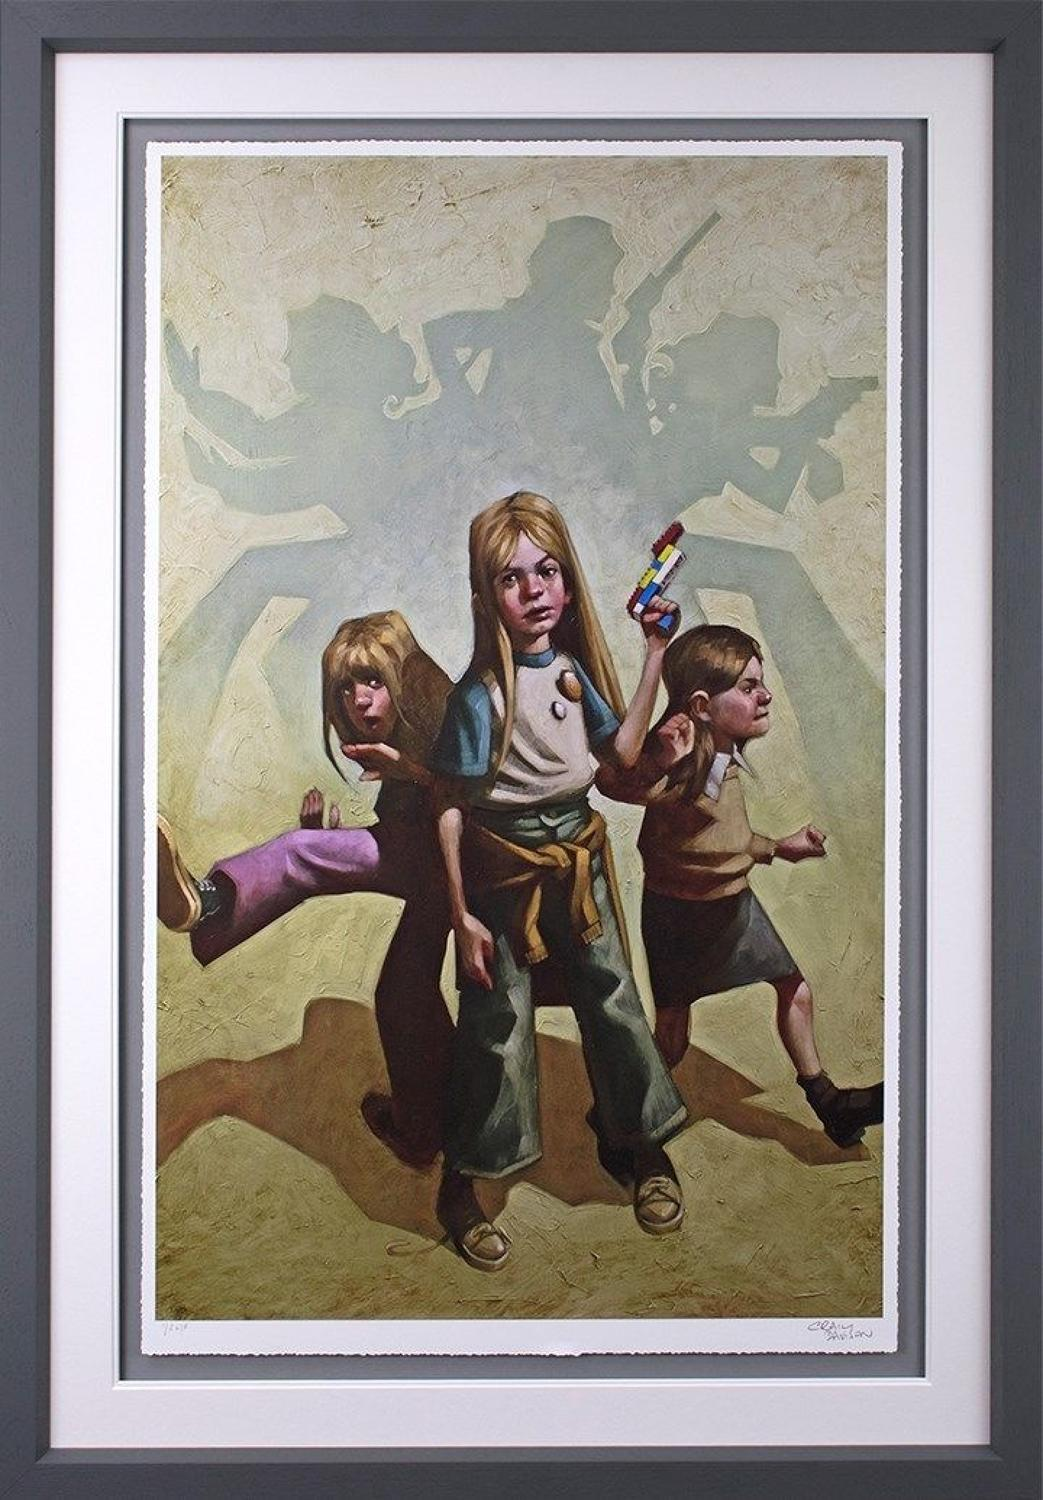 Ok Angels, let's Get To Work - Framed Art Print by Craig Davison